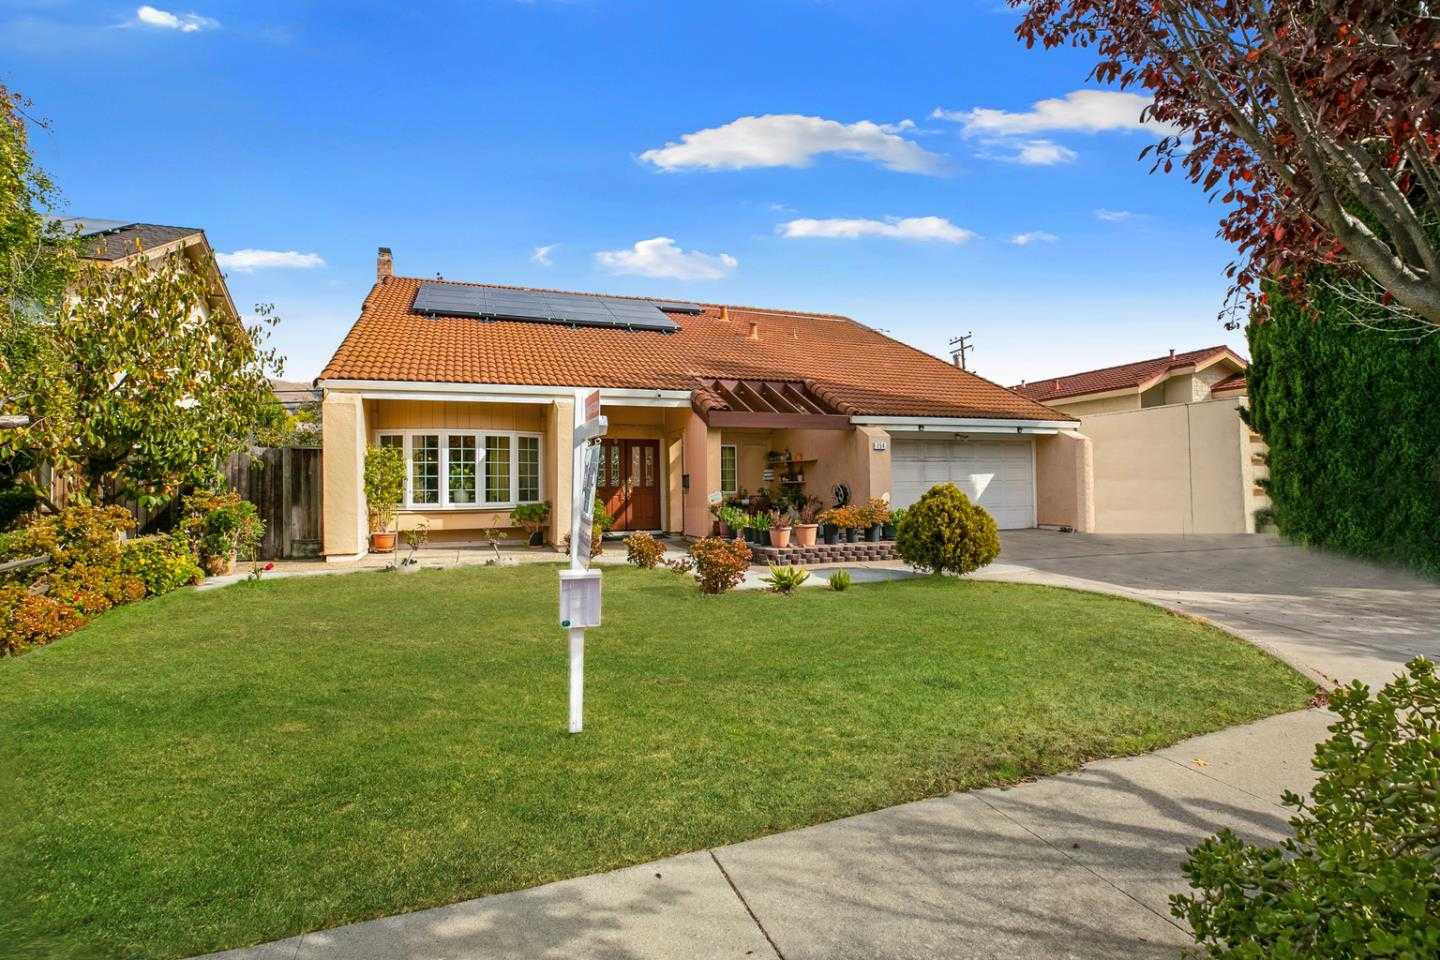 $1,298,888 - 5Br/3Ba -  for Sale in San Jose